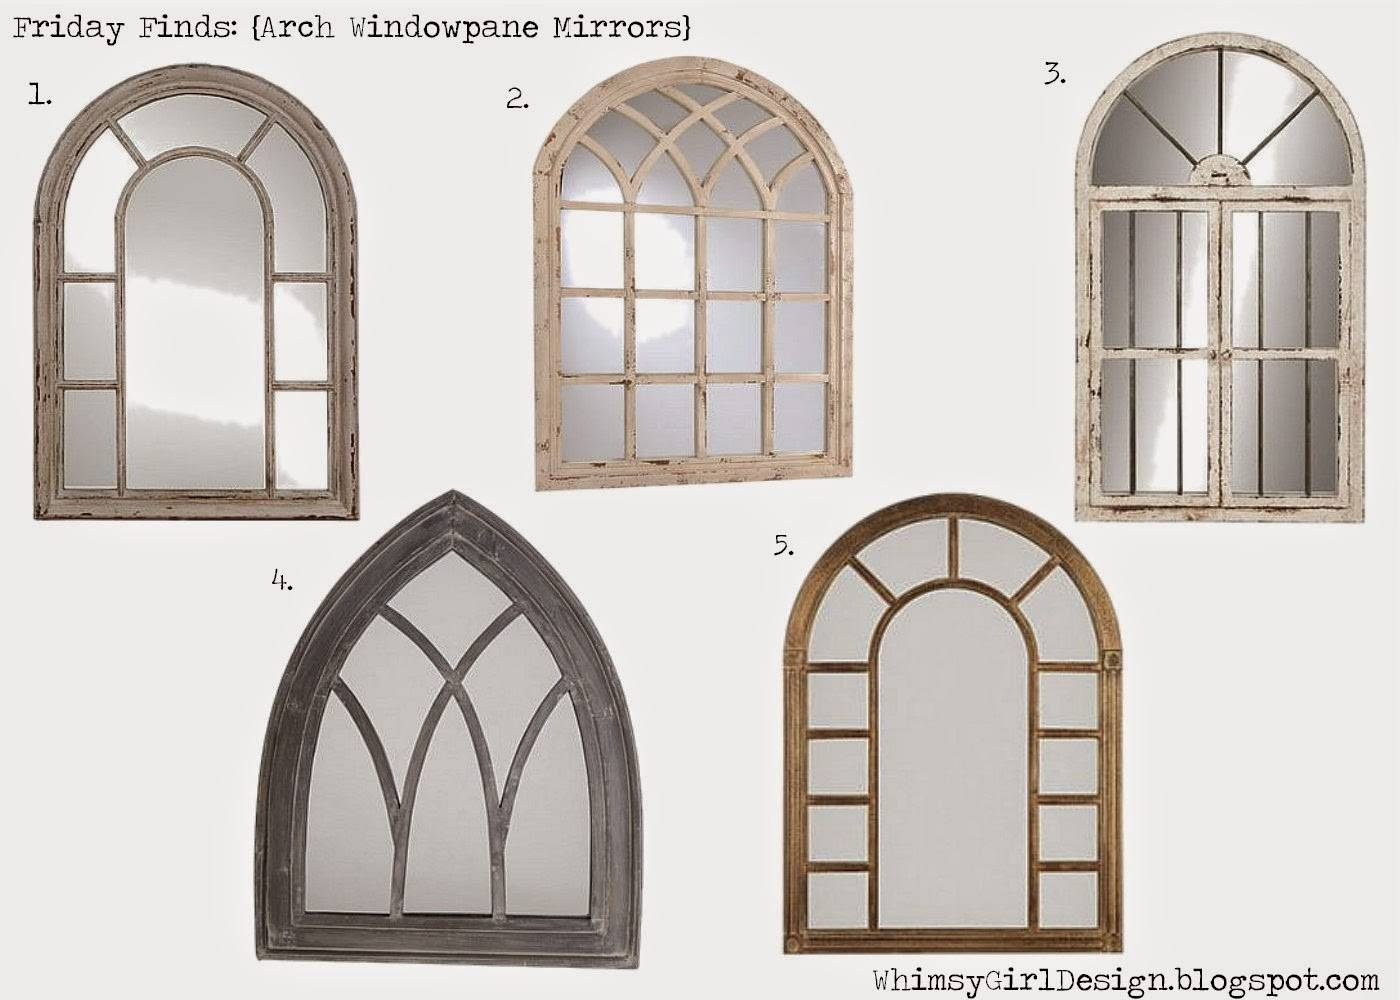 Windows Mirrors That Look Like Windows Designs Arched Window pertaining to Arched Window Mirrors (Image 25 of 25)